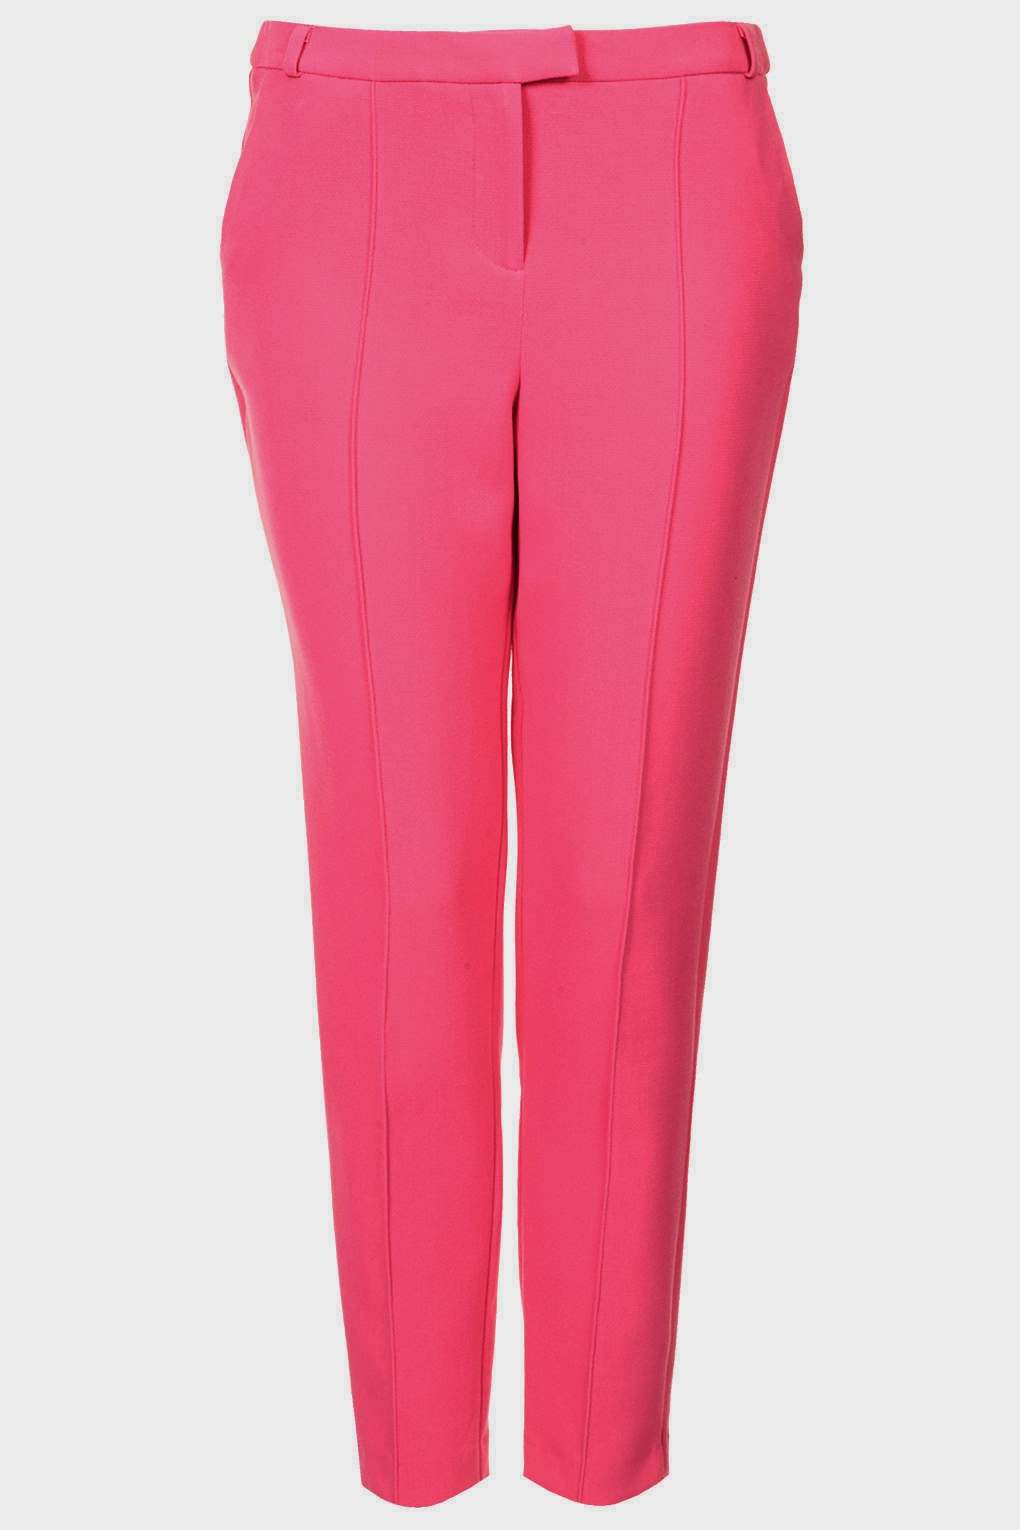 topshop pink trousers